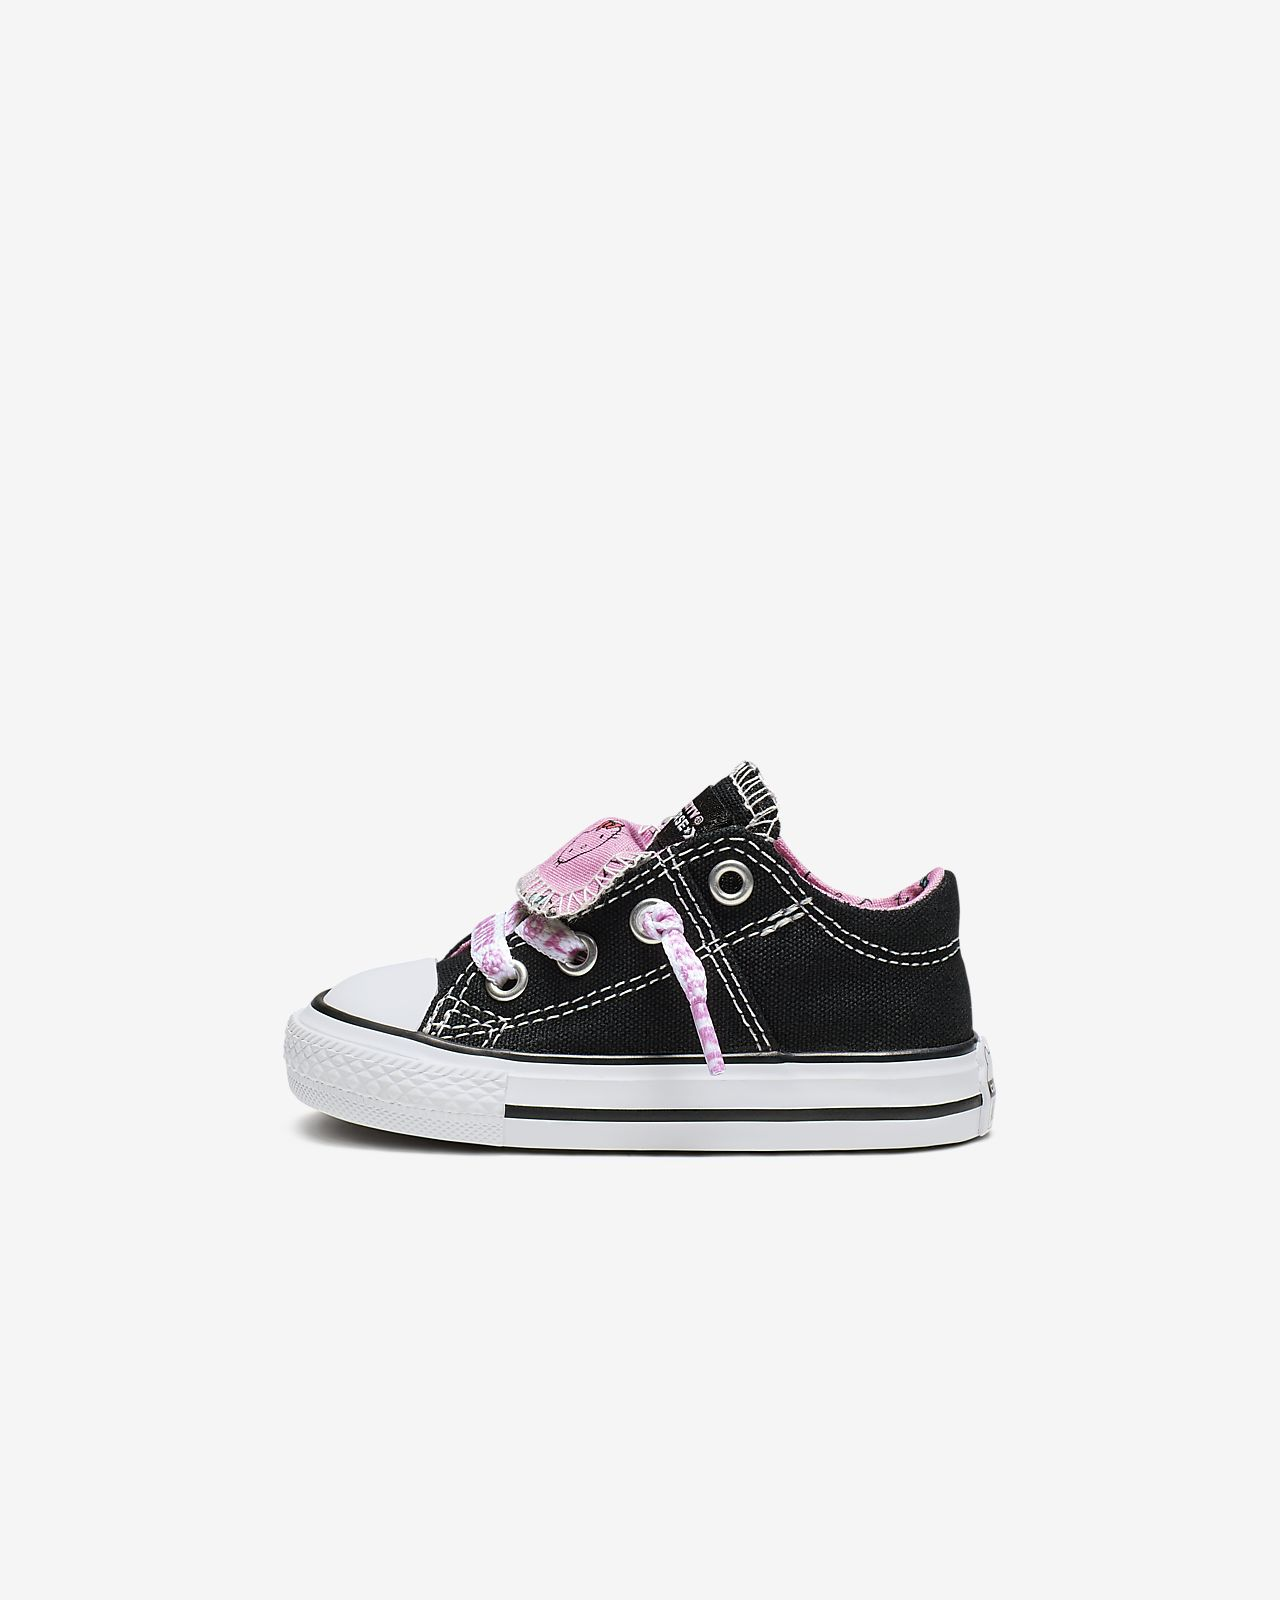 Converse x Hello Kitty Chuck Taylor All Star Maddie Low Top Baby Shoe